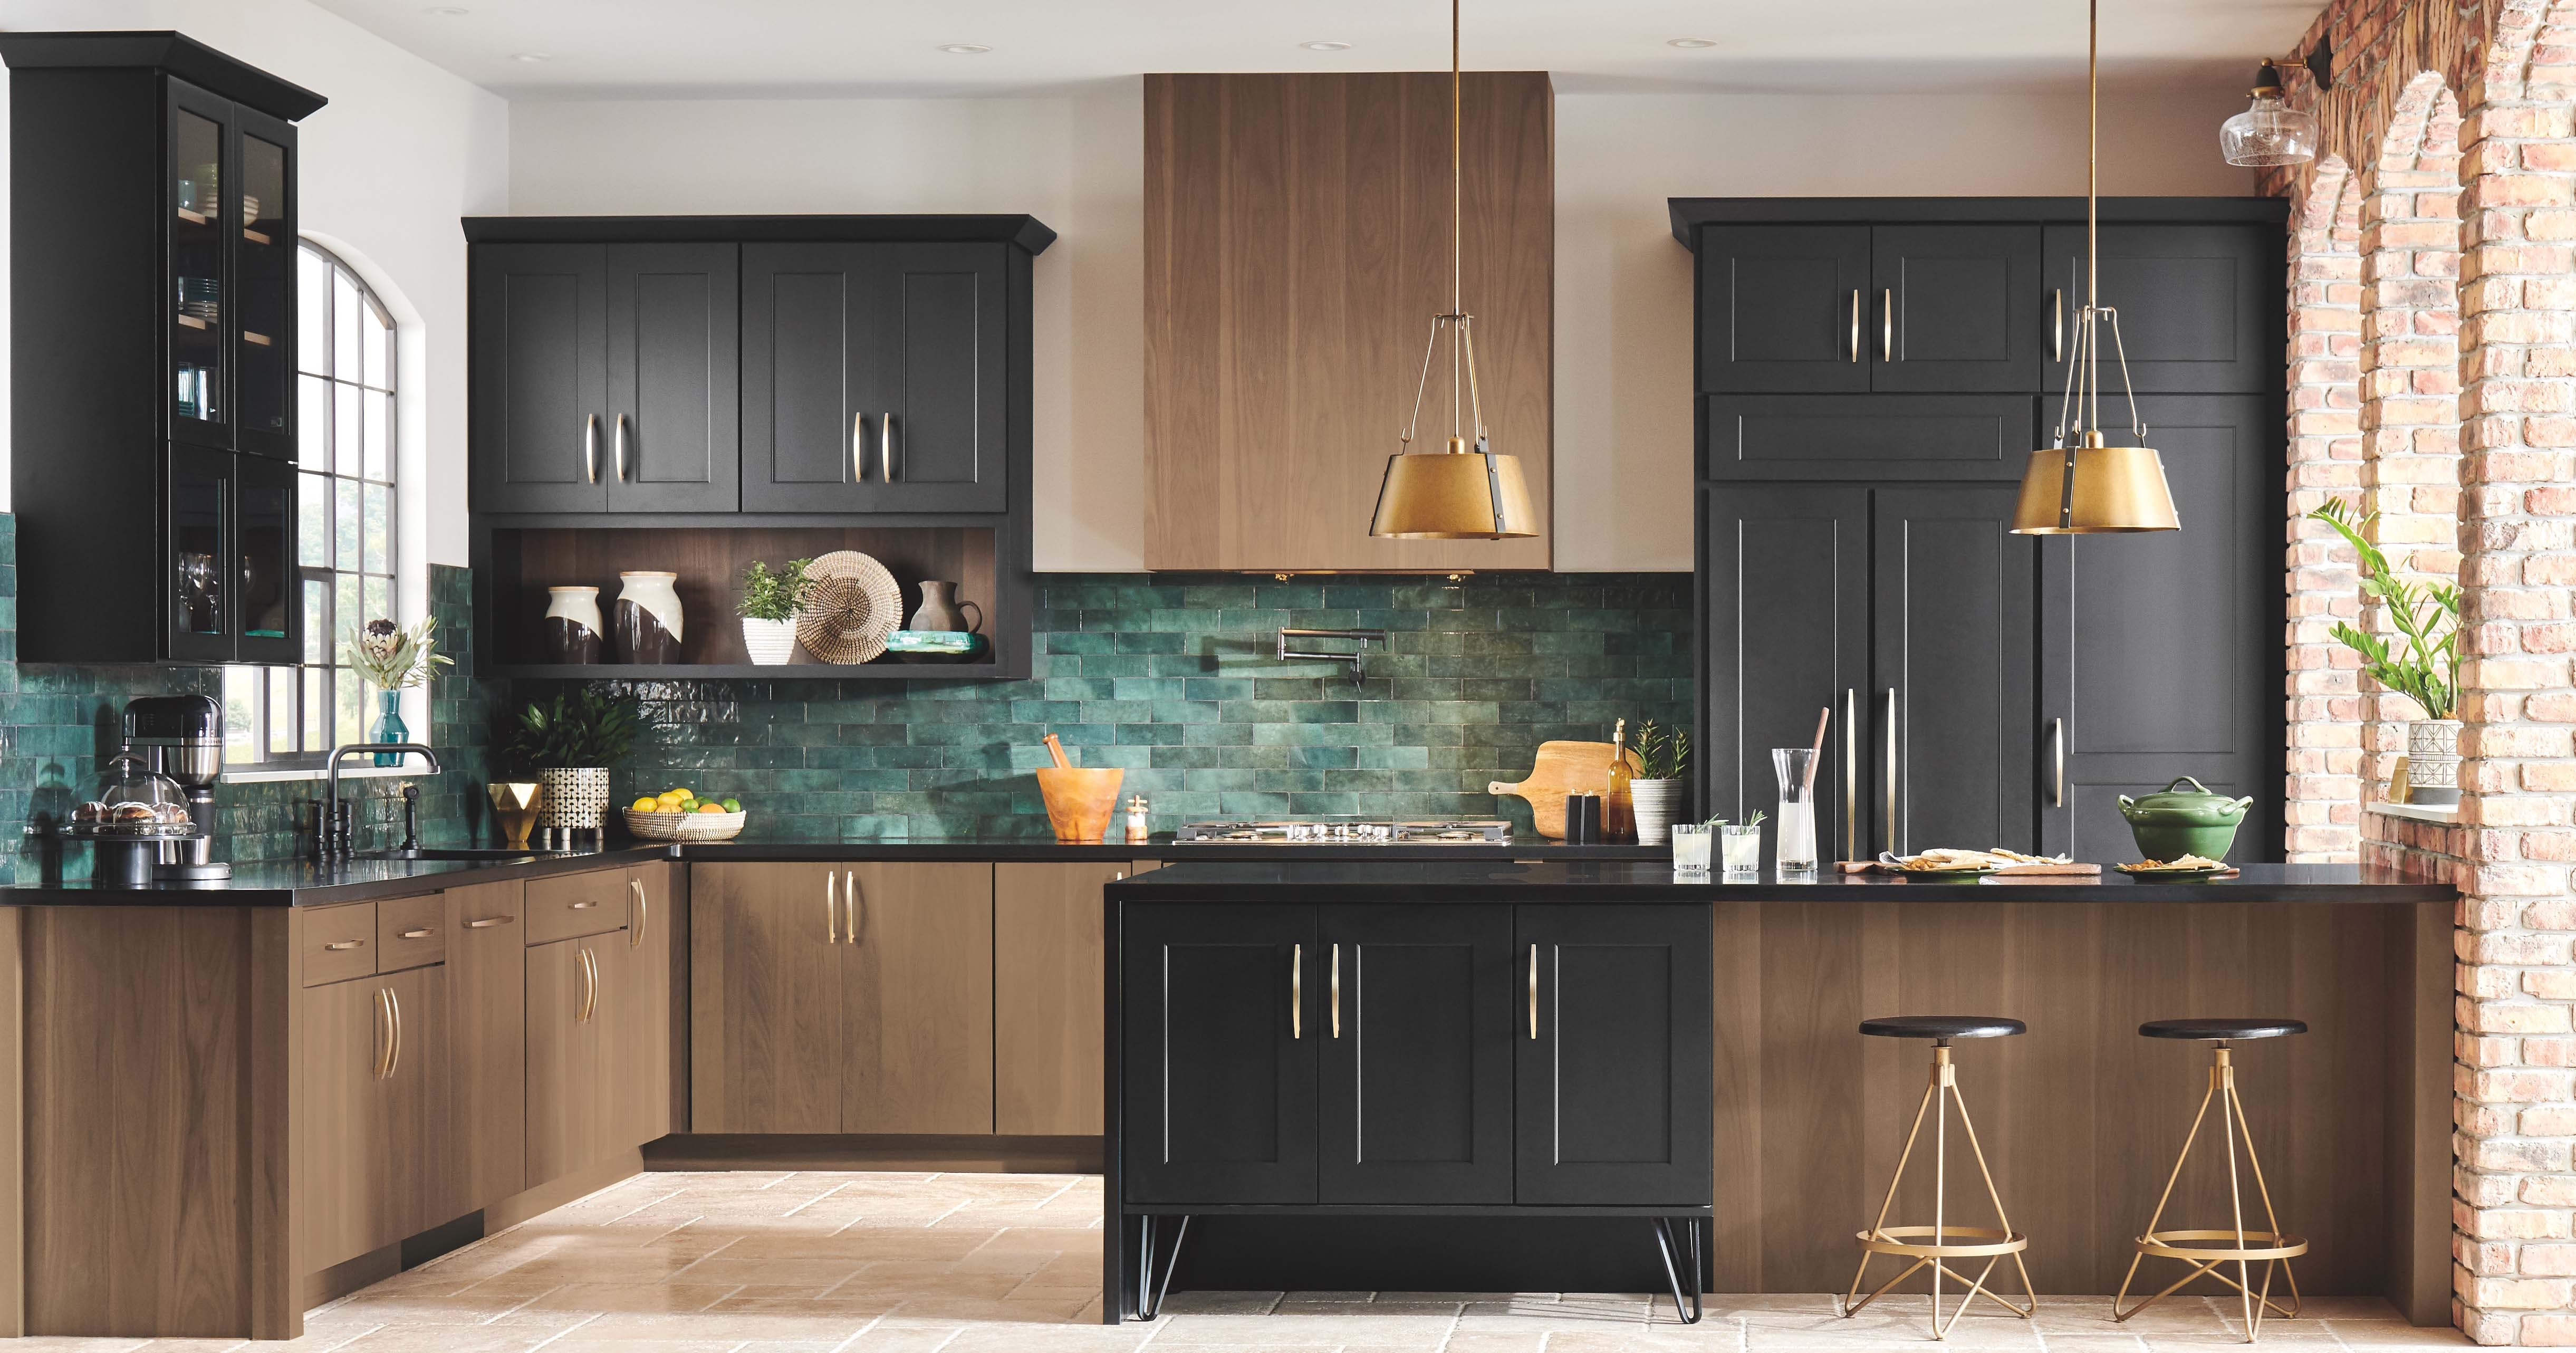 The Top Kitchen Trends To Expect In 2021 Purewow